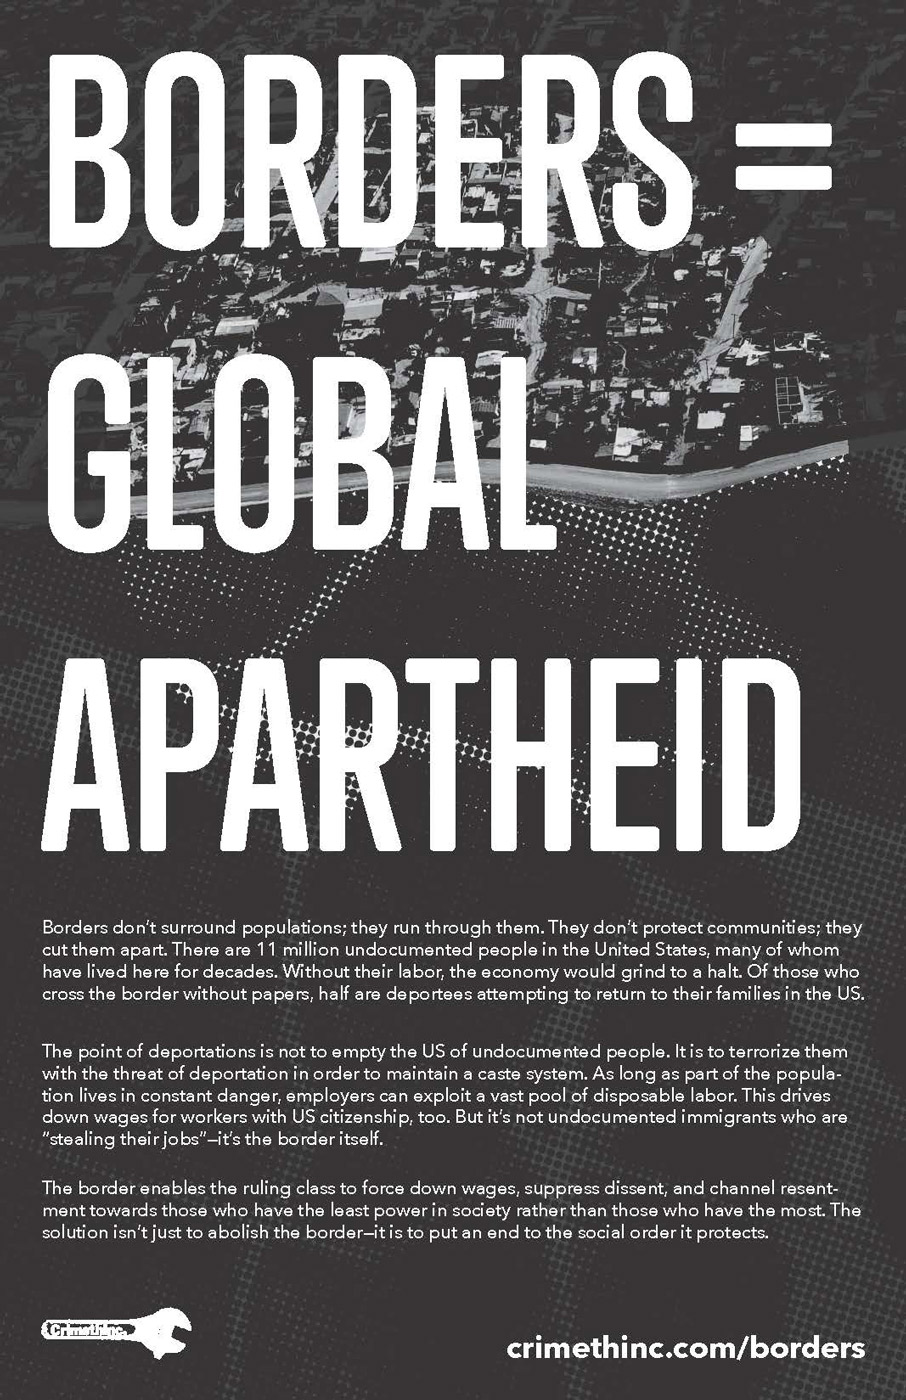 borders-equal-global-apartheid_front_black_and_white.jpg